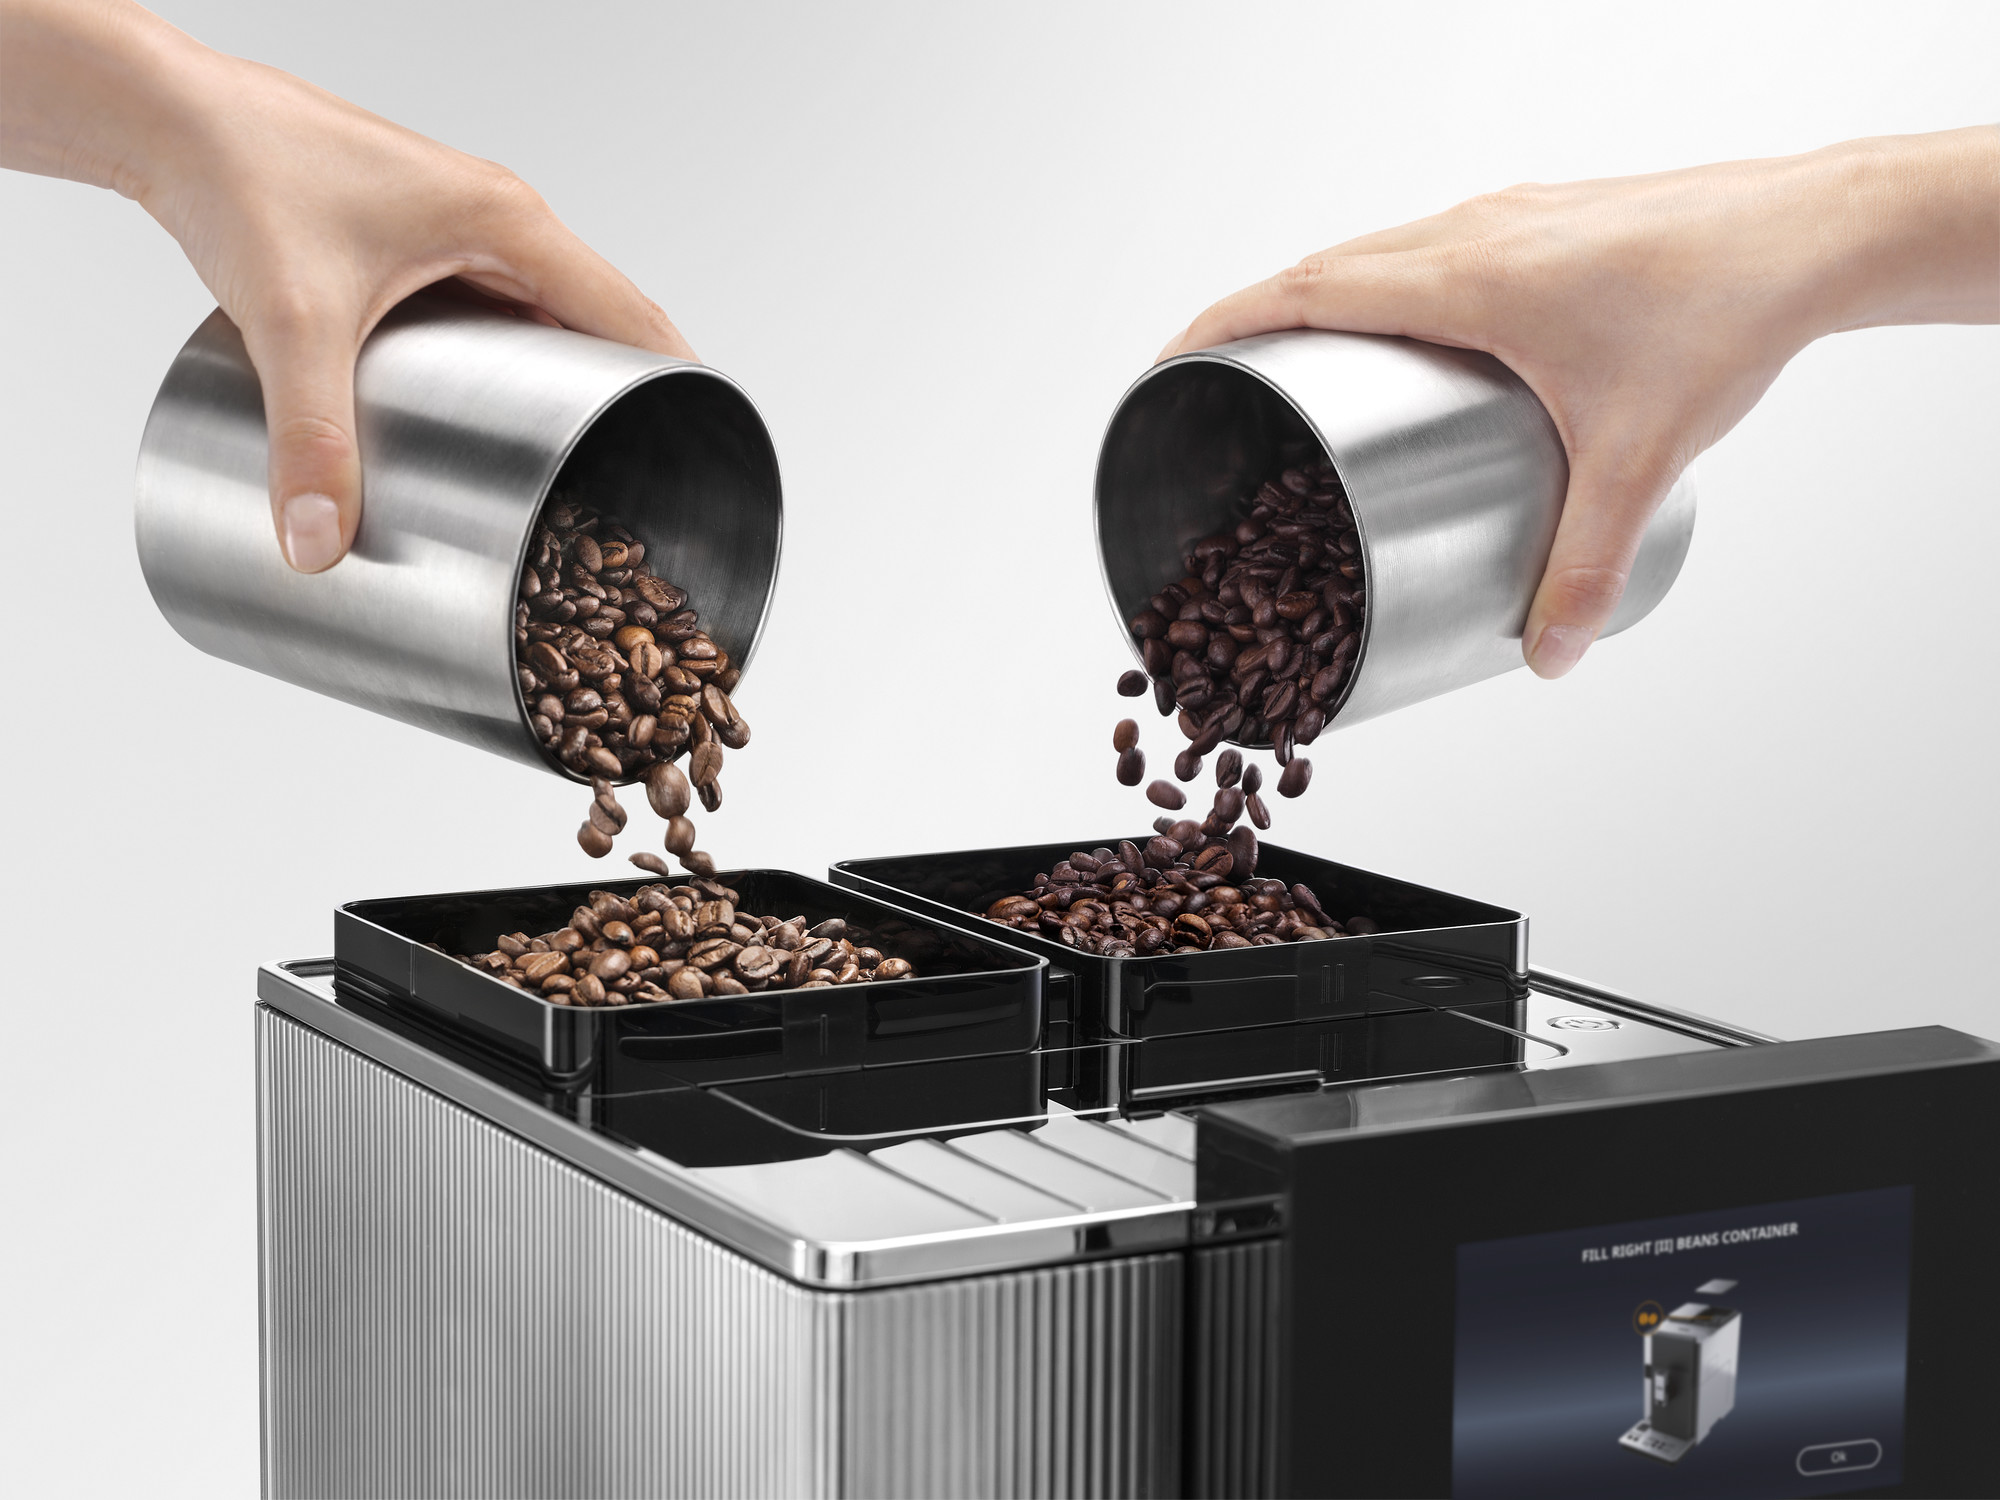 Pouring coffee beans into two separate bean hoppers of the De'Longhi Maestosa Coffee Machine